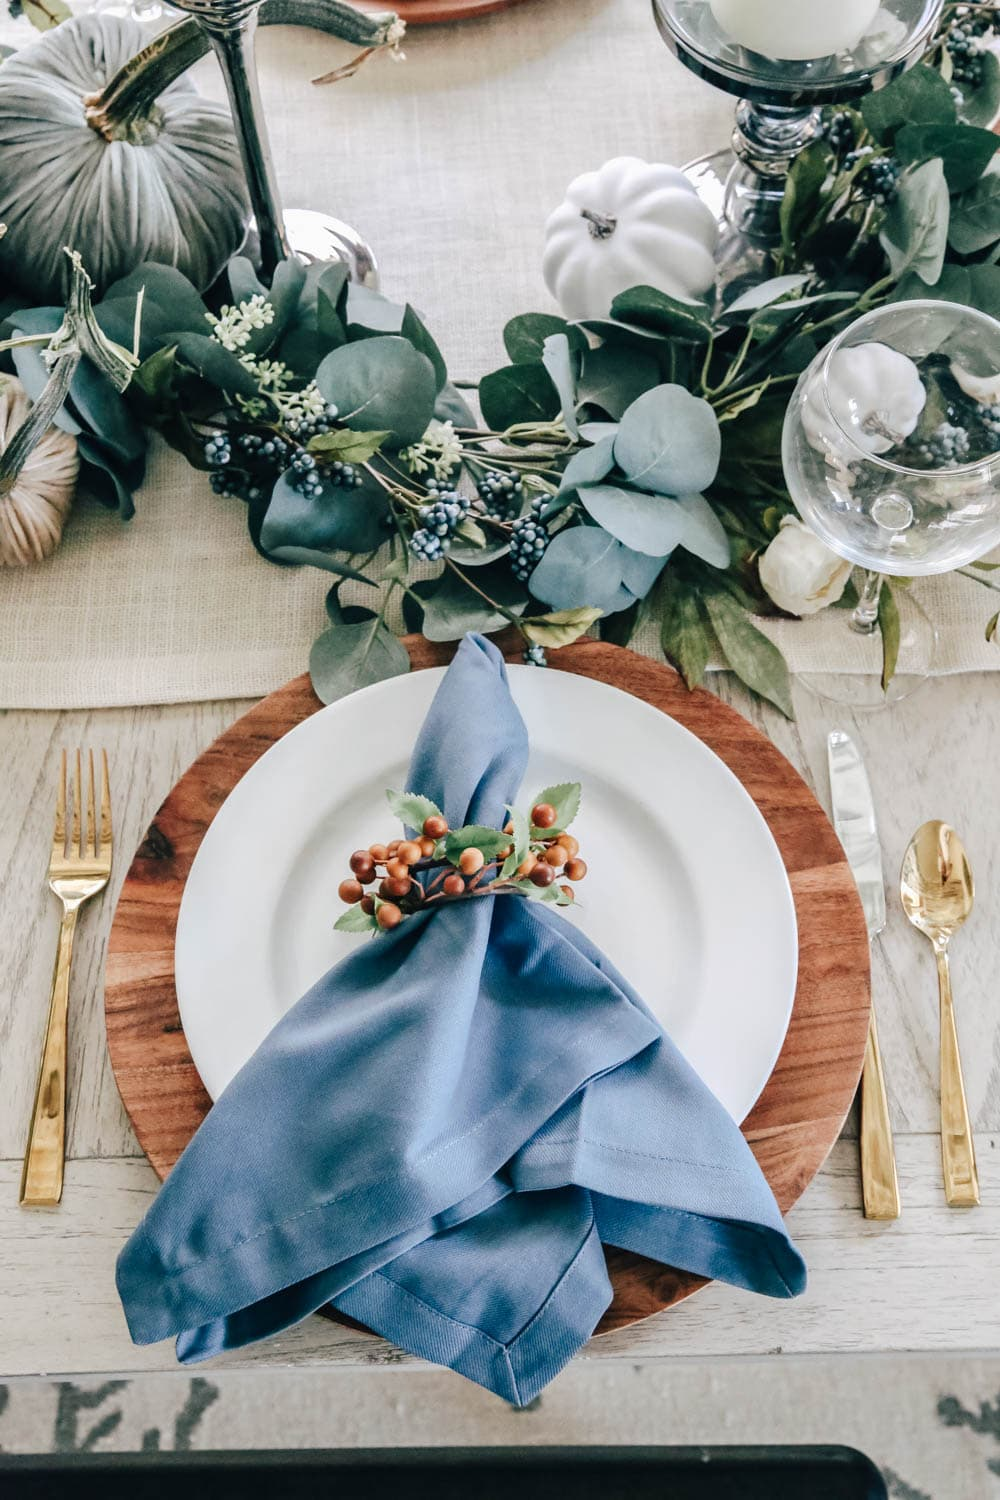 Beautiful shades of blue in napkins, pumpkins and berries for a simple Thanksgiving Table for fall. #falldecor #Thanksgiving #falltable